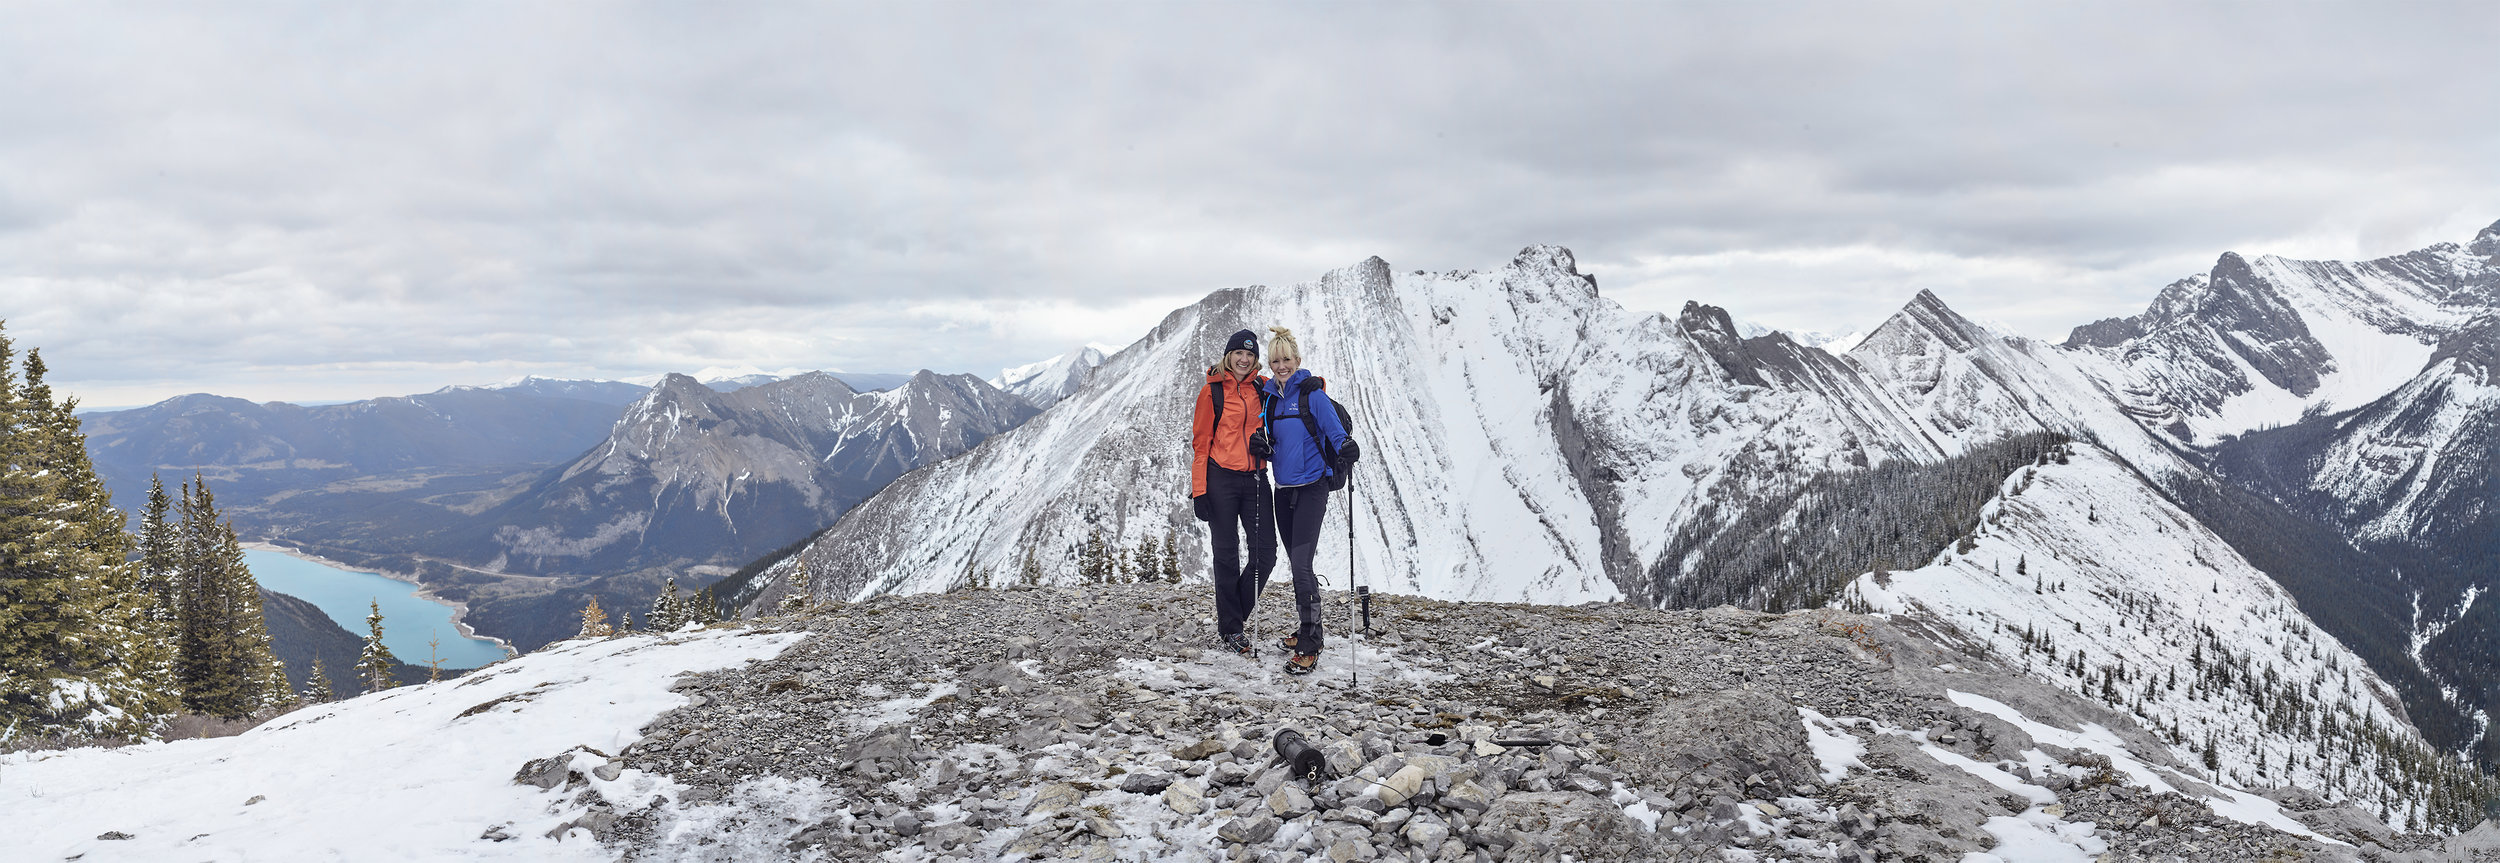 Rebecca and Mindy on the summit of Grant MacEwan Peak. On the left is Barrier Lake below  Mount Baldy .